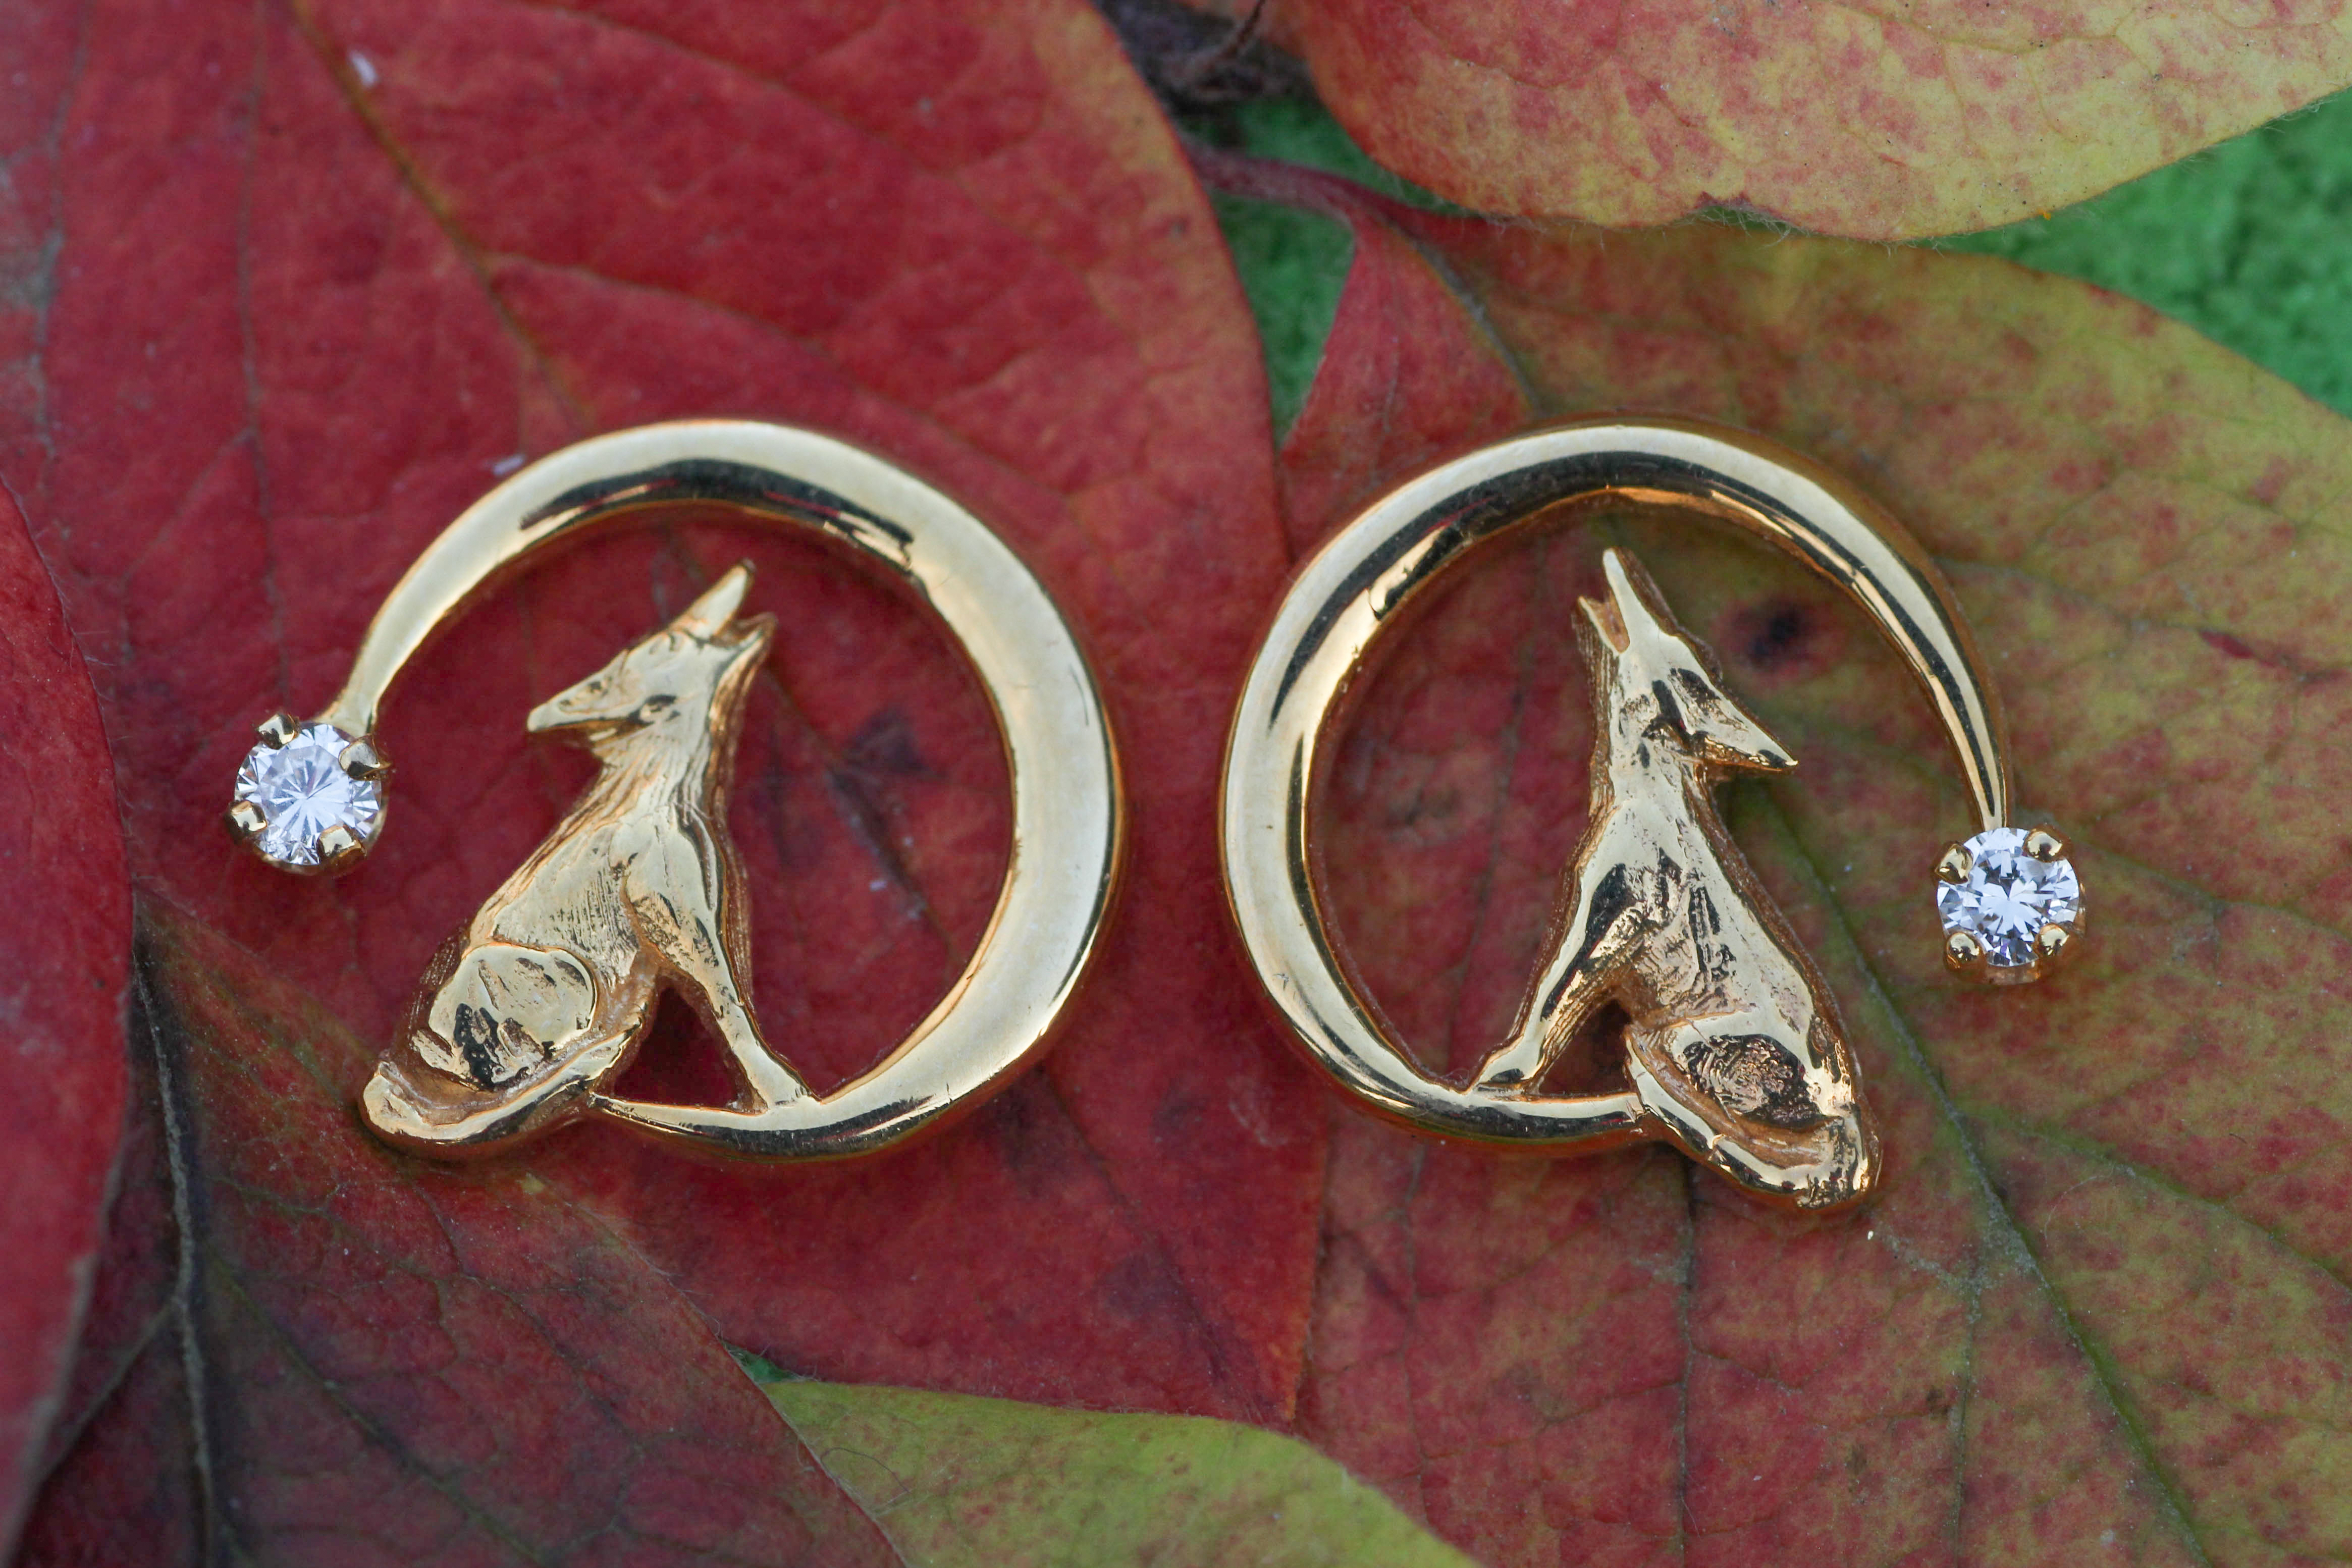 Wild Alaska Howling Wolf Earrings Crafted in 14kt Yellow Gold with Diamonds